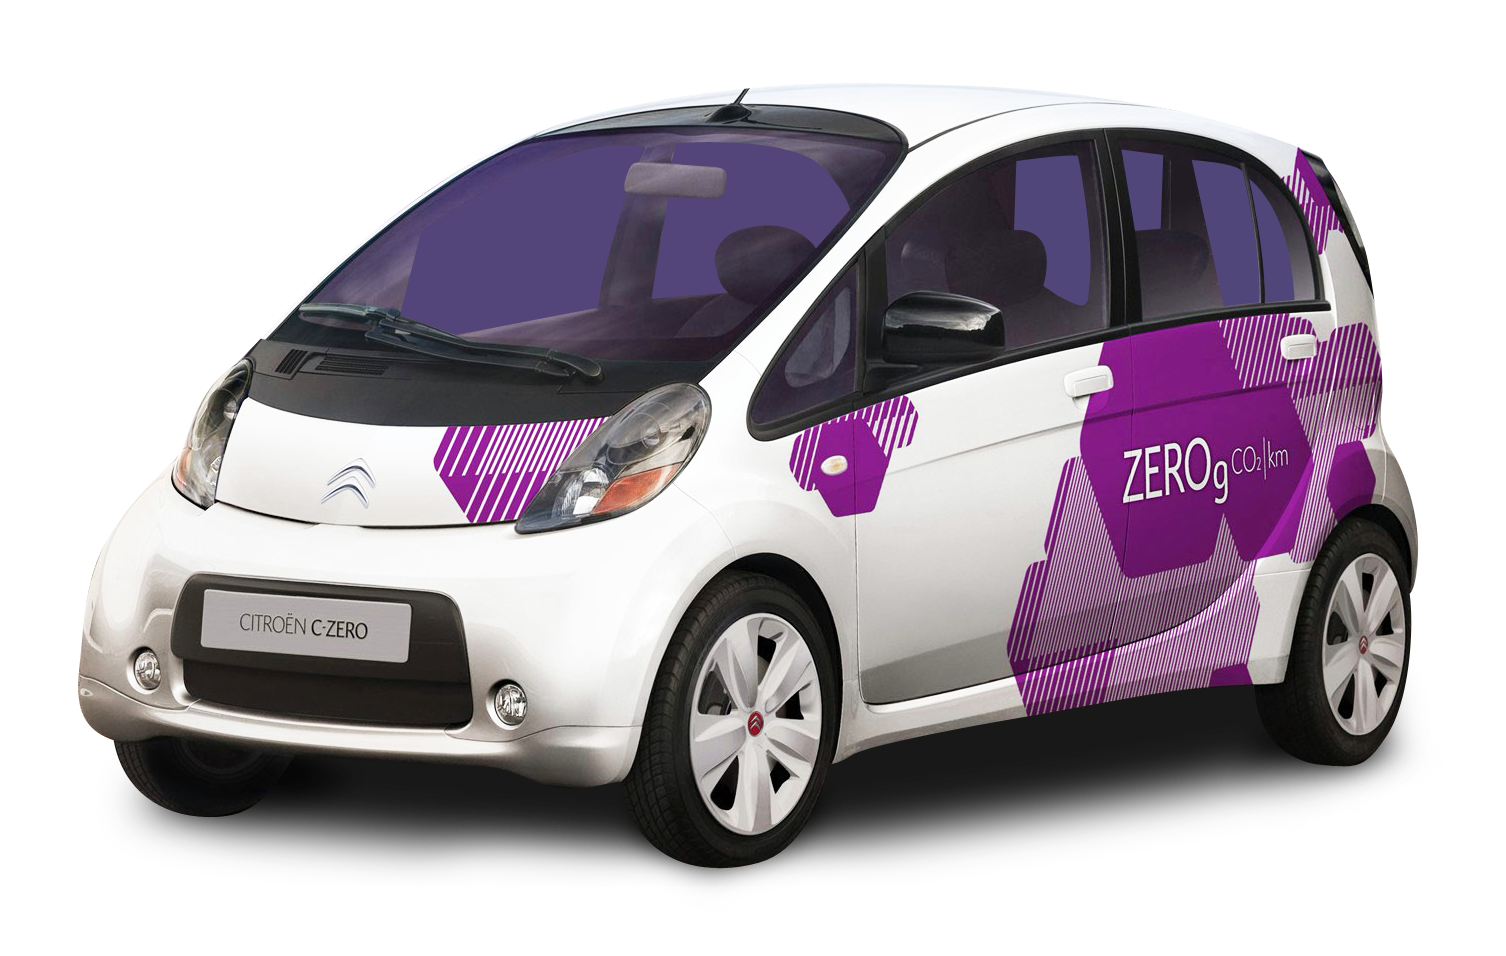 White Citroen C Zero Small Car Png Image Small Cars Car Png Car Lettering